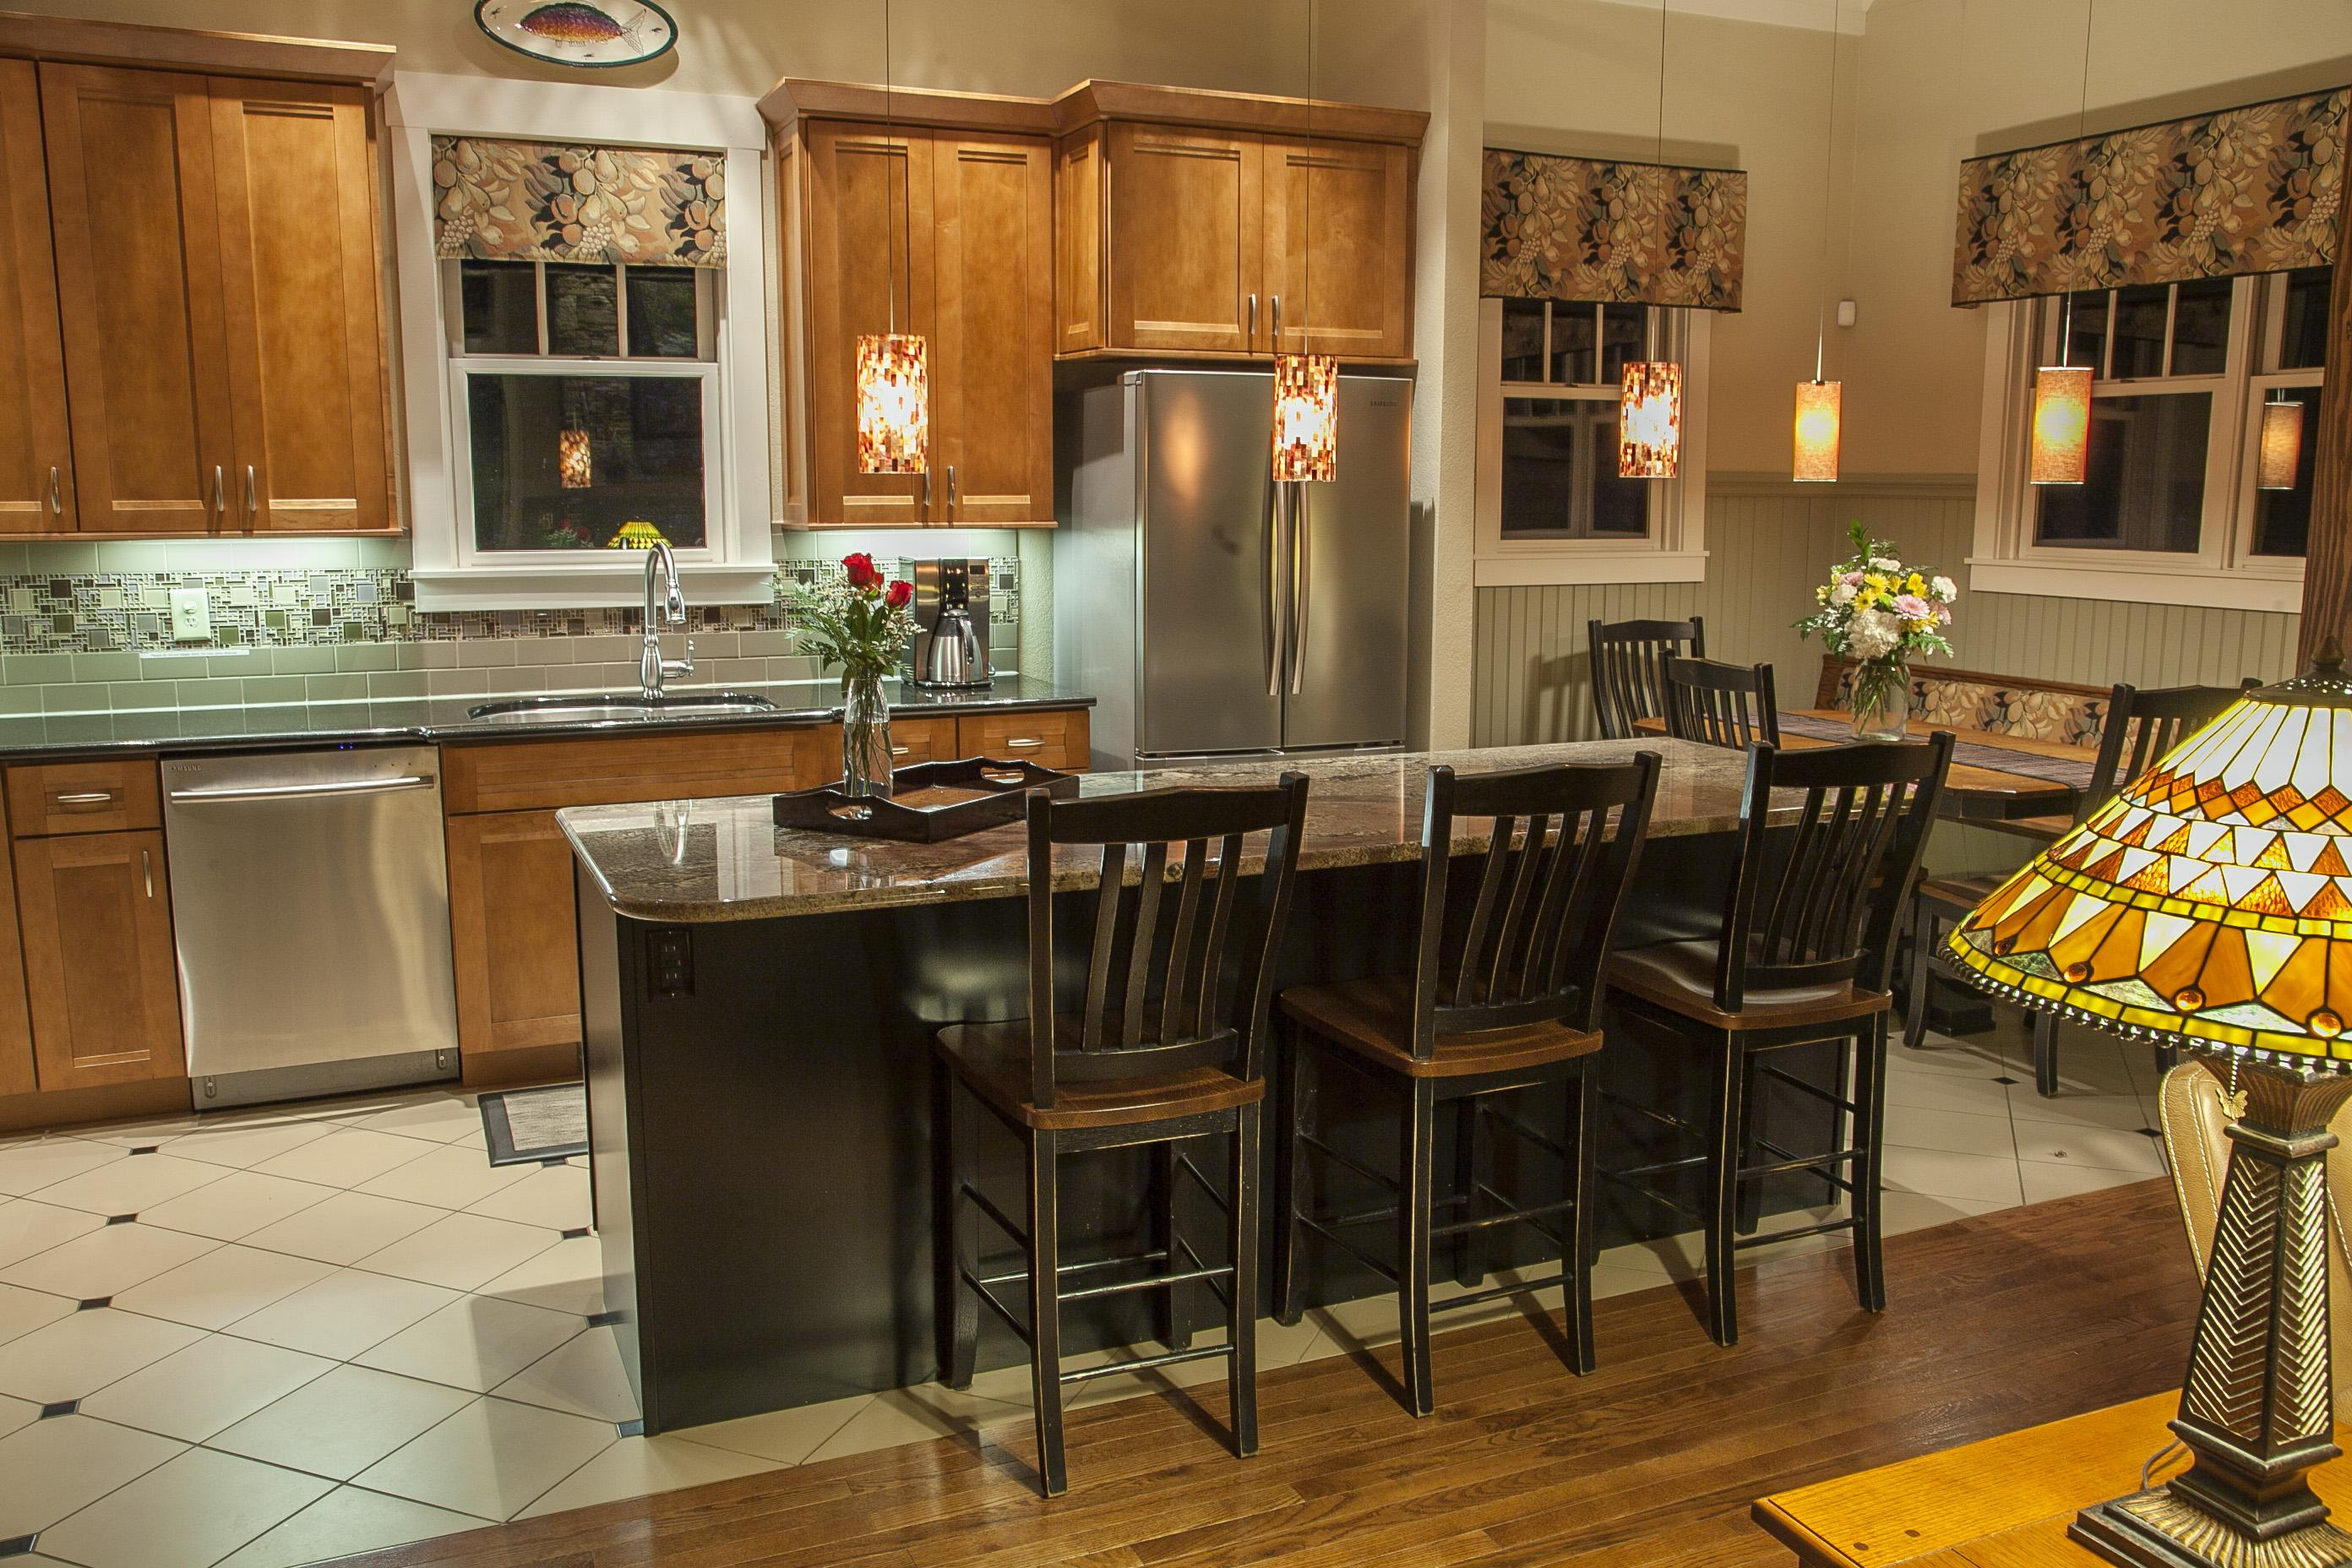 Well appointed, Stainless and Granite Kitchen is a Chef's Delight!